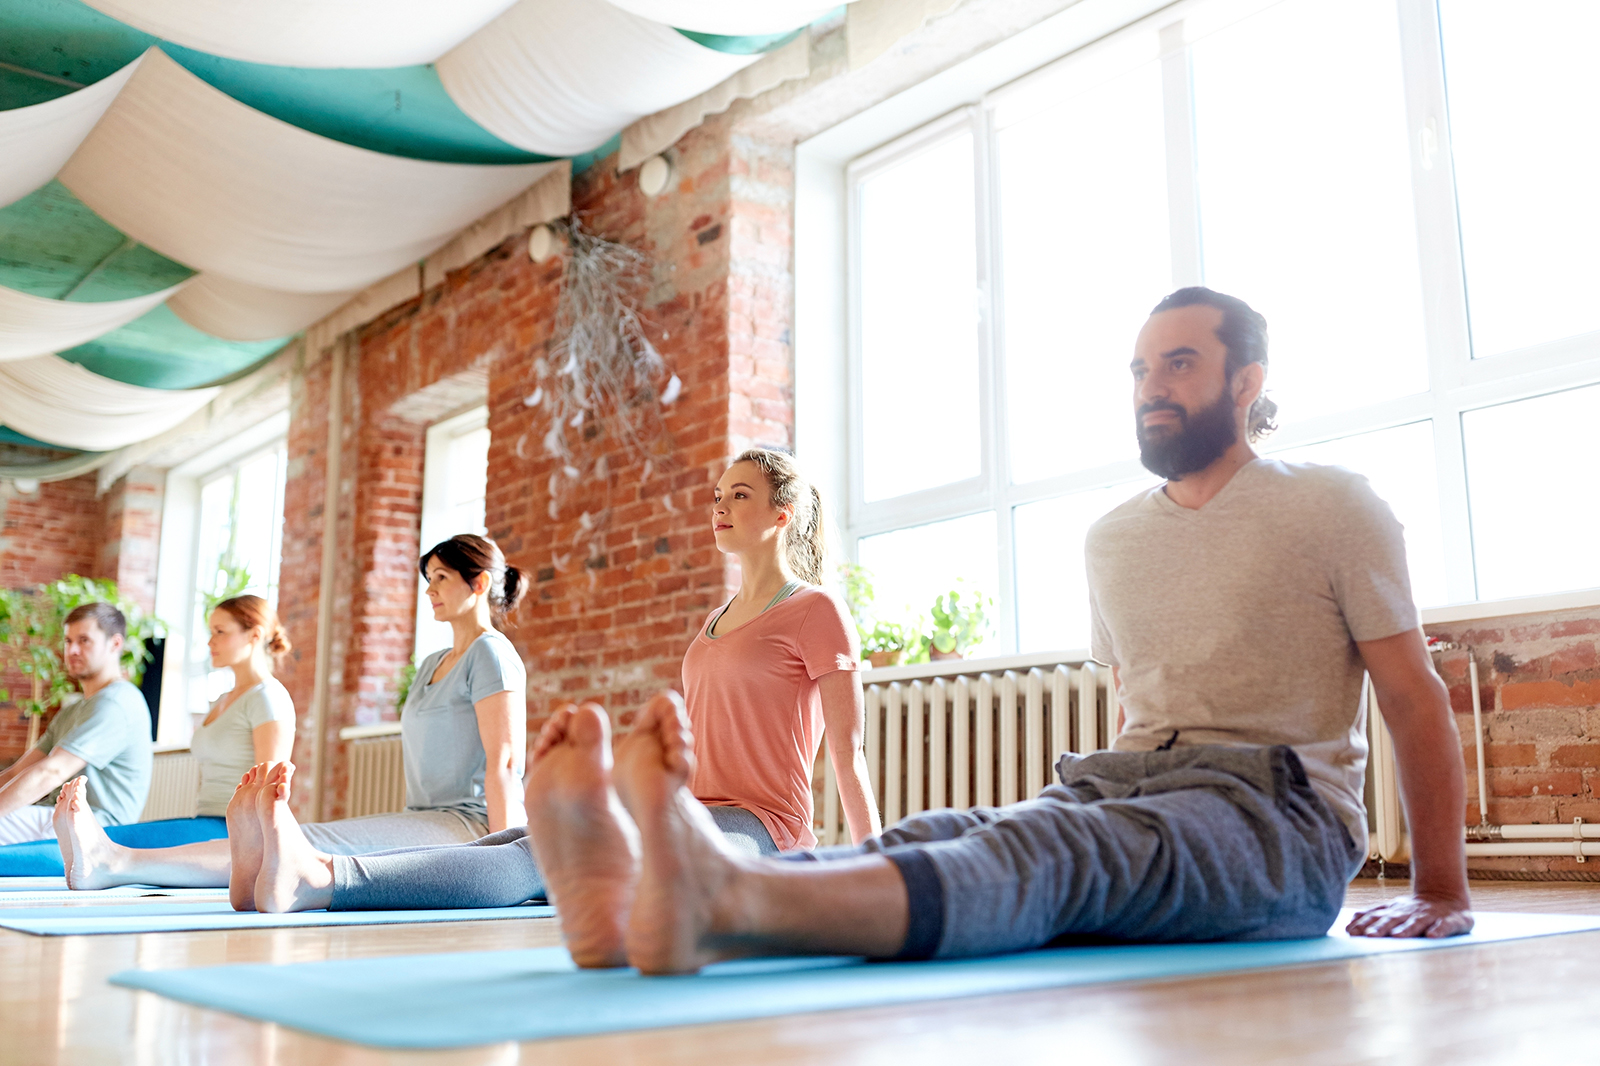 Group Doing Yoga | Health, Happiness, and The Many Other Benefits of Yoga